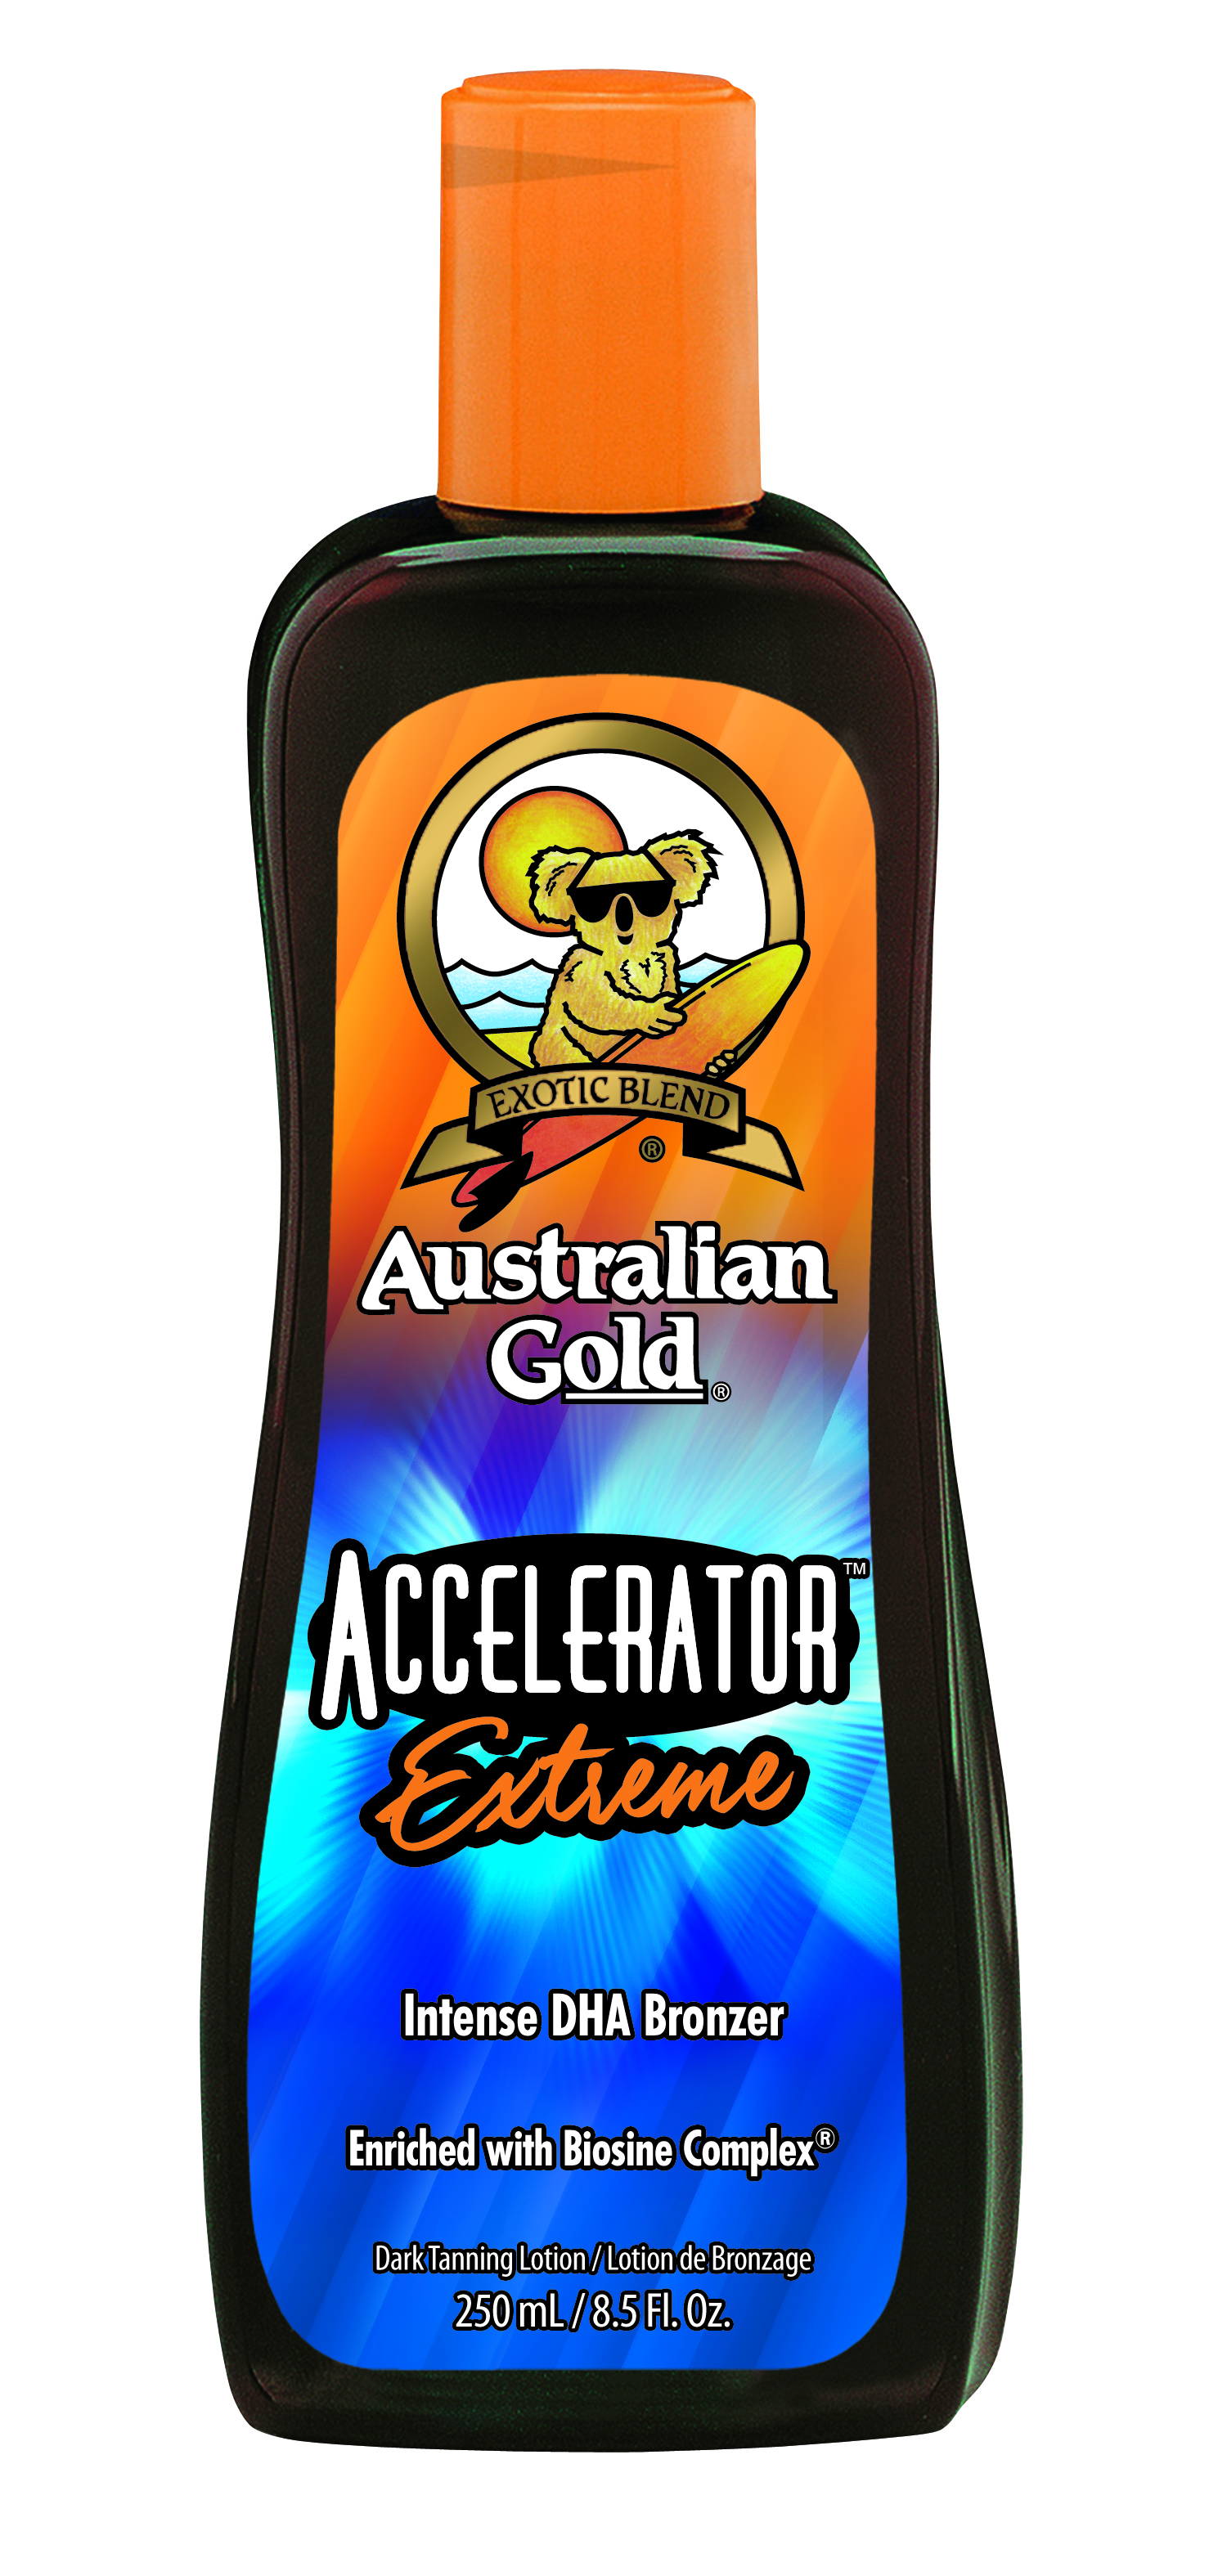 "Acceleratorâ""¢ Spray"